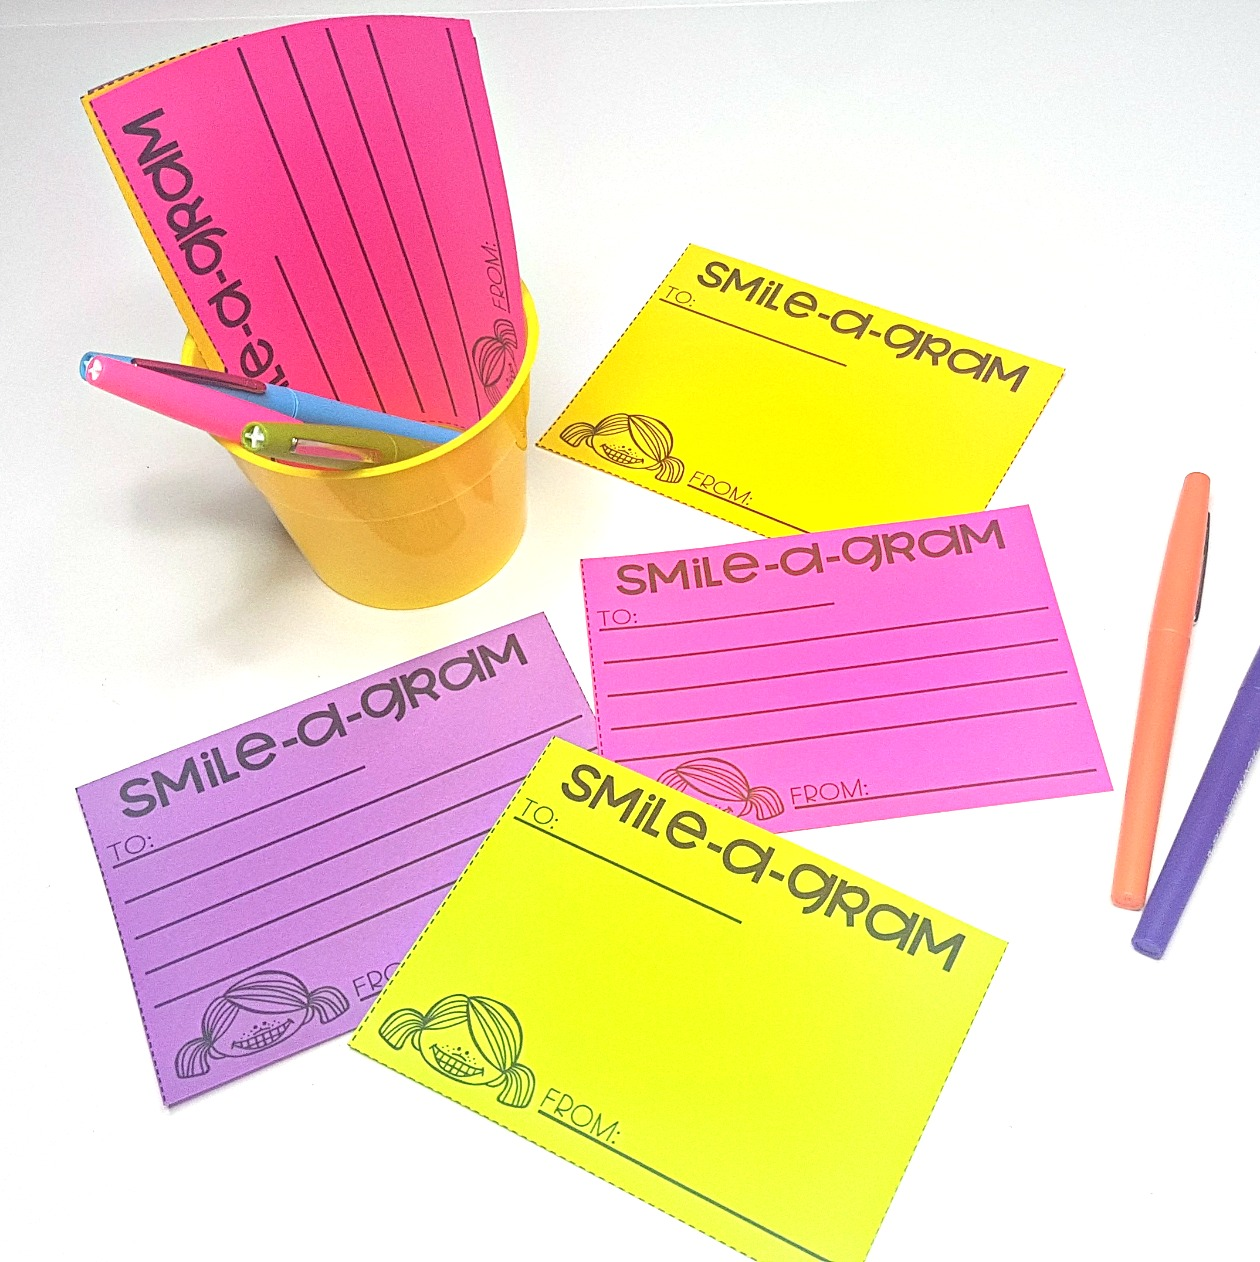 smile-a-gram kindness note card on table with pens